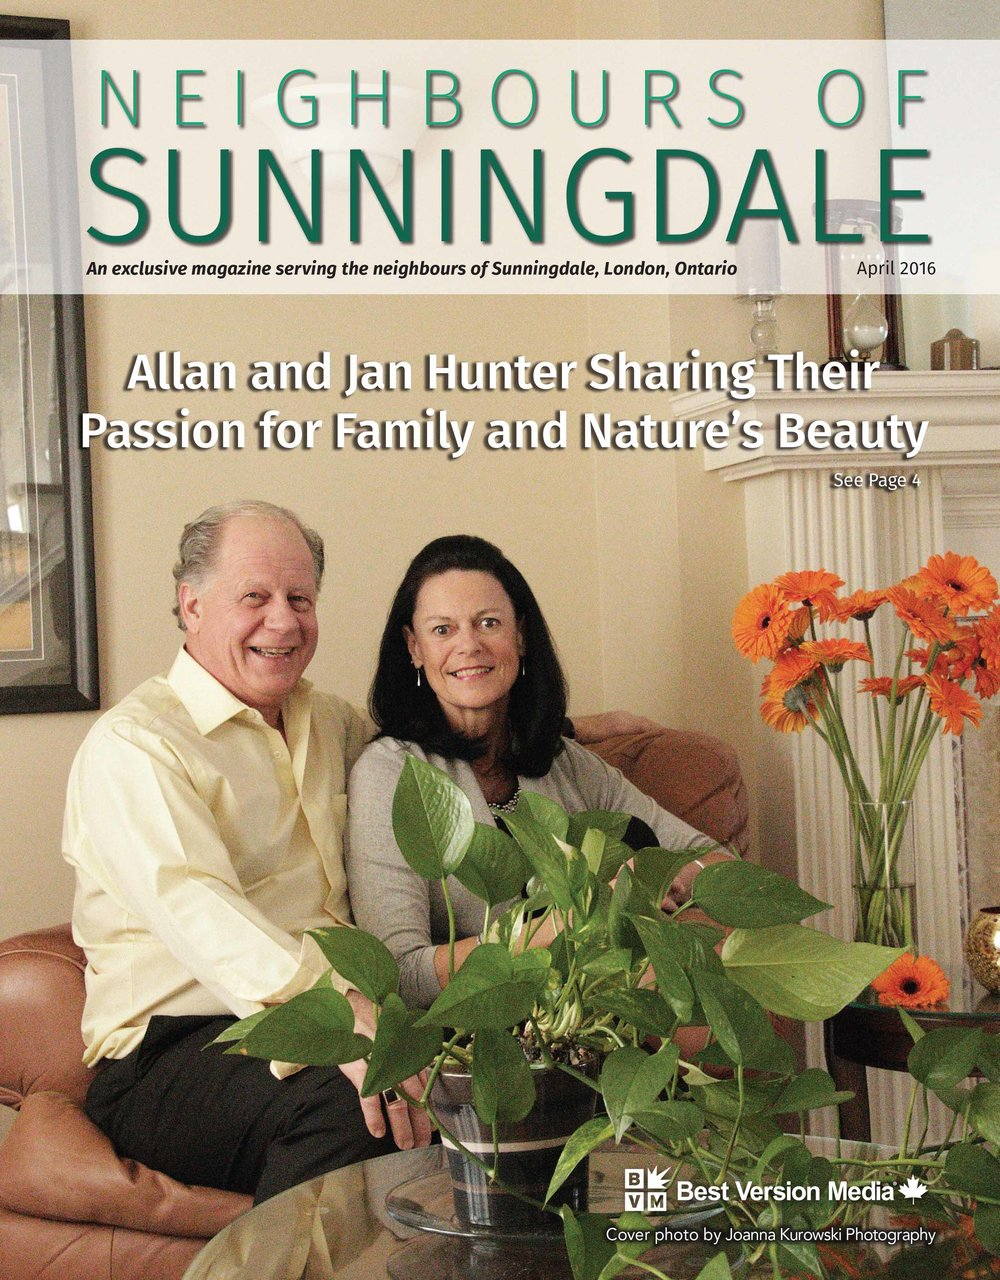 Neighbours_of_Sunningdale_April2016_COVER+(1).jpg